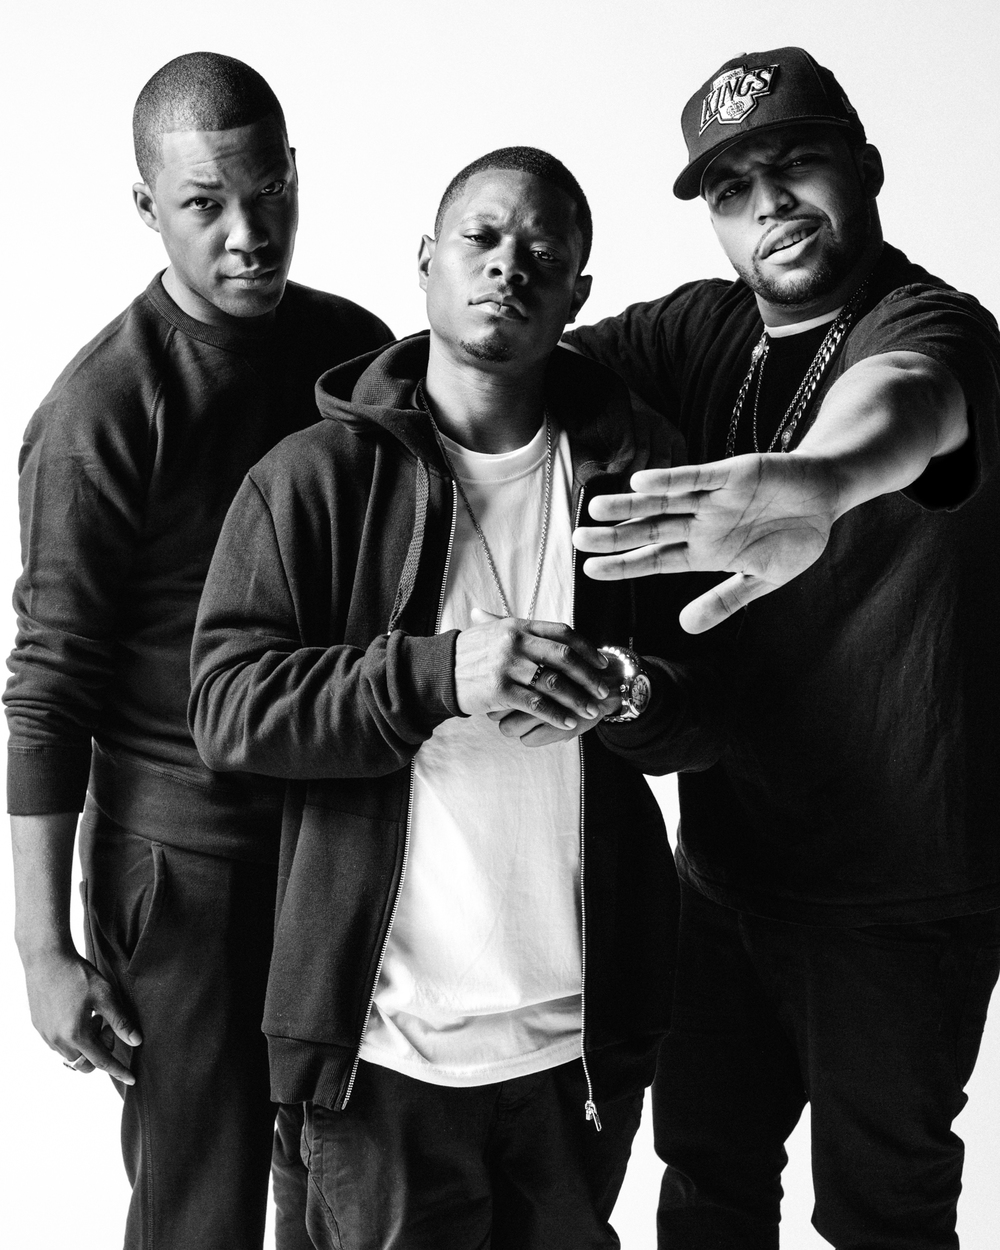 Straight outta compton cast/MTV